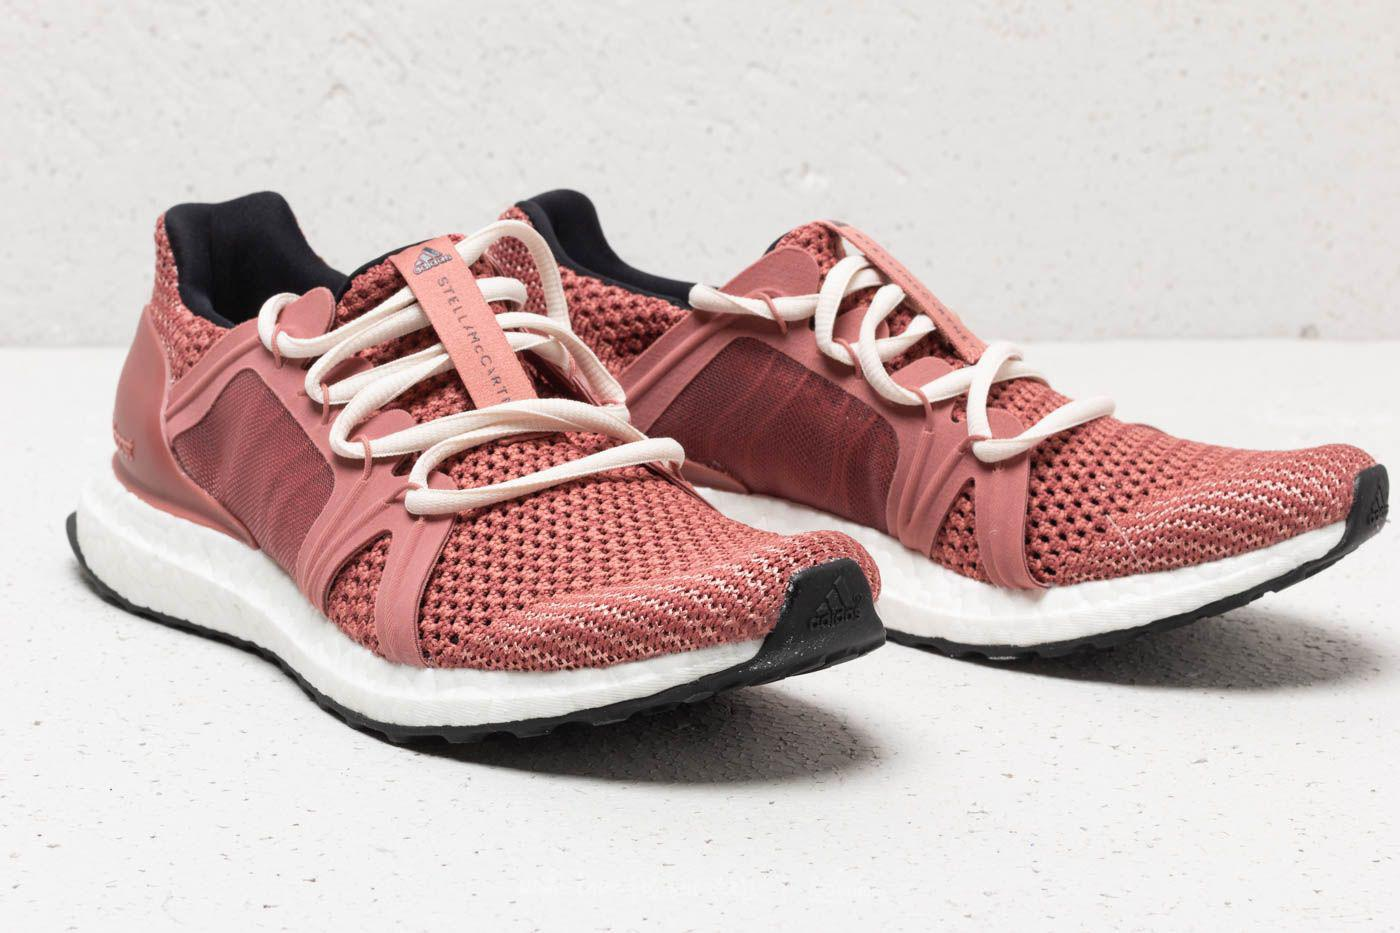 best website 31dca 8734b Women's Adidas X Stella Mccartney Ultraboost Raw Pink/ Core Frost/ Core  Black